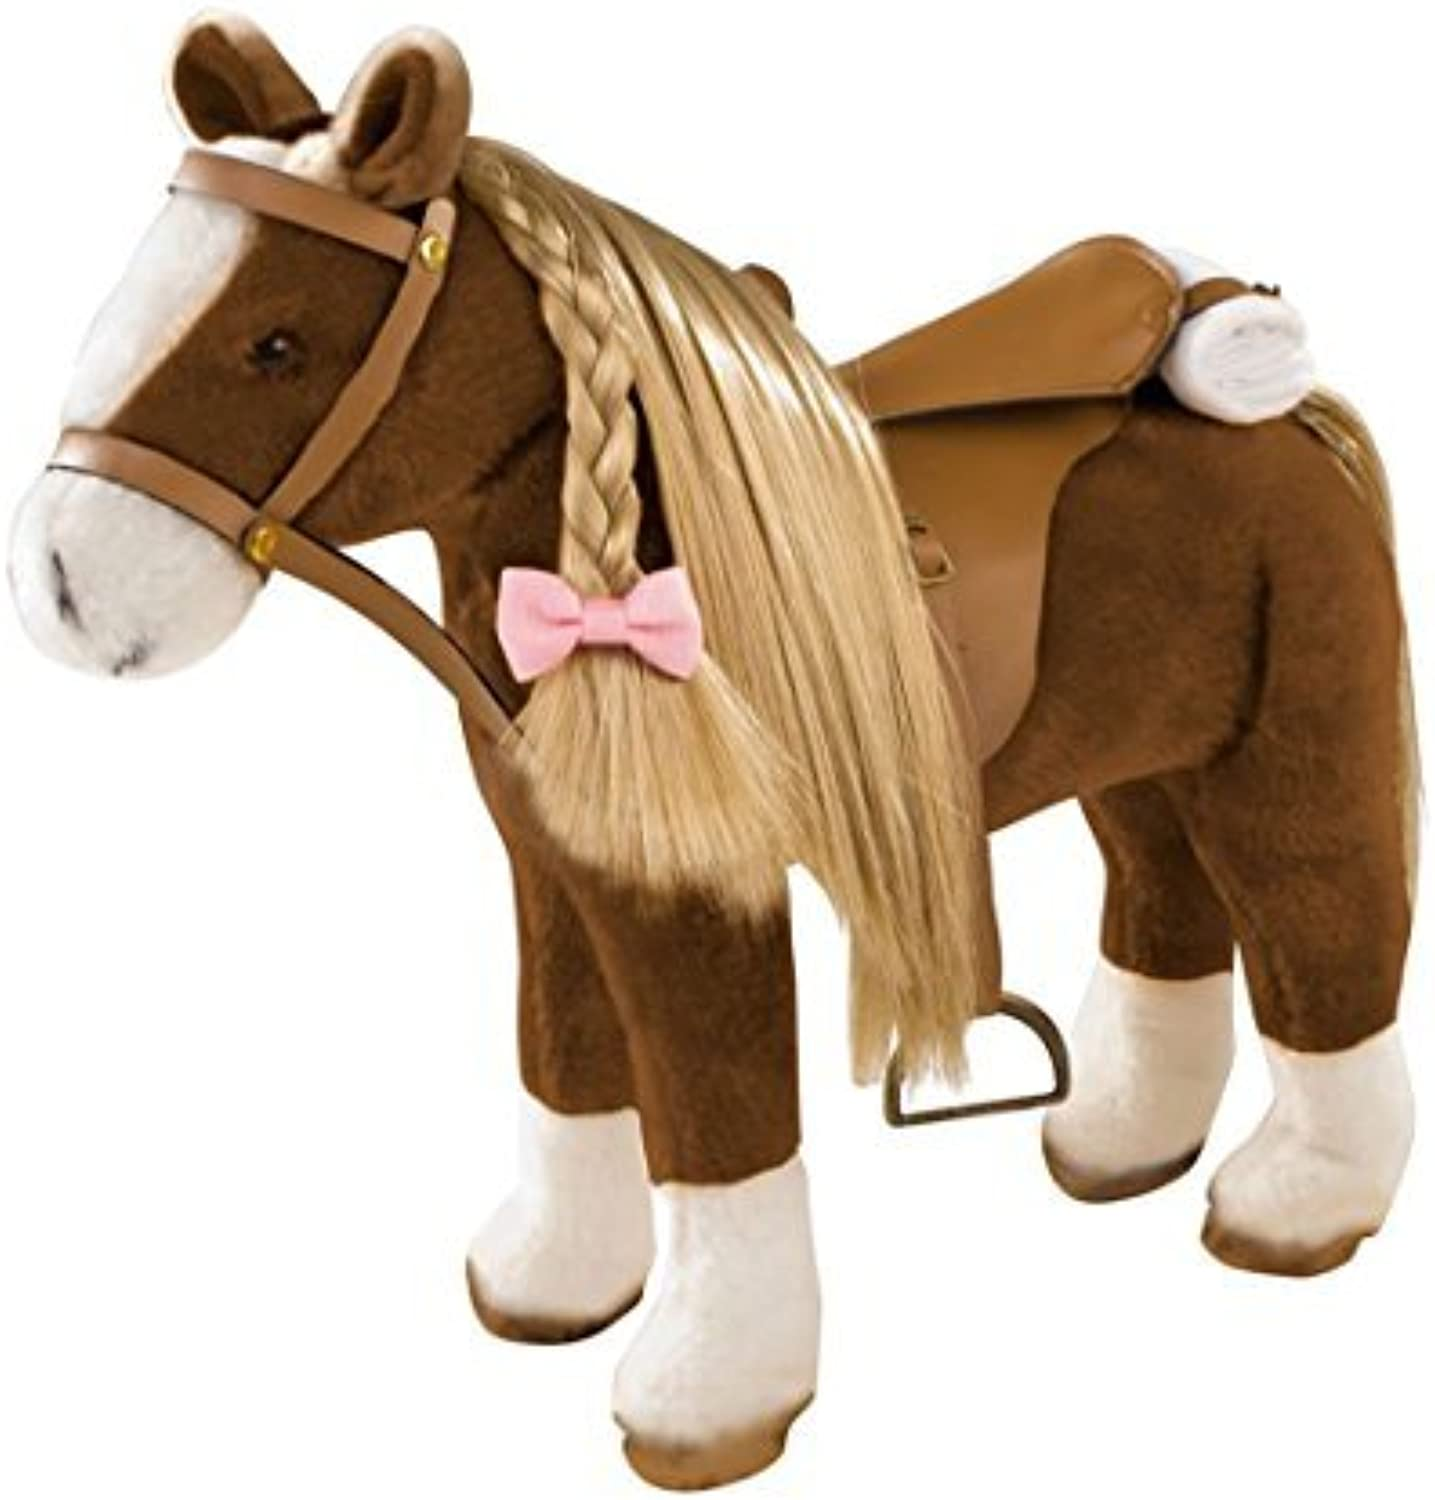 Gotz Big Plush Combing Horse to Brush and Style for 18 and 19.5 Dolls by Gotz